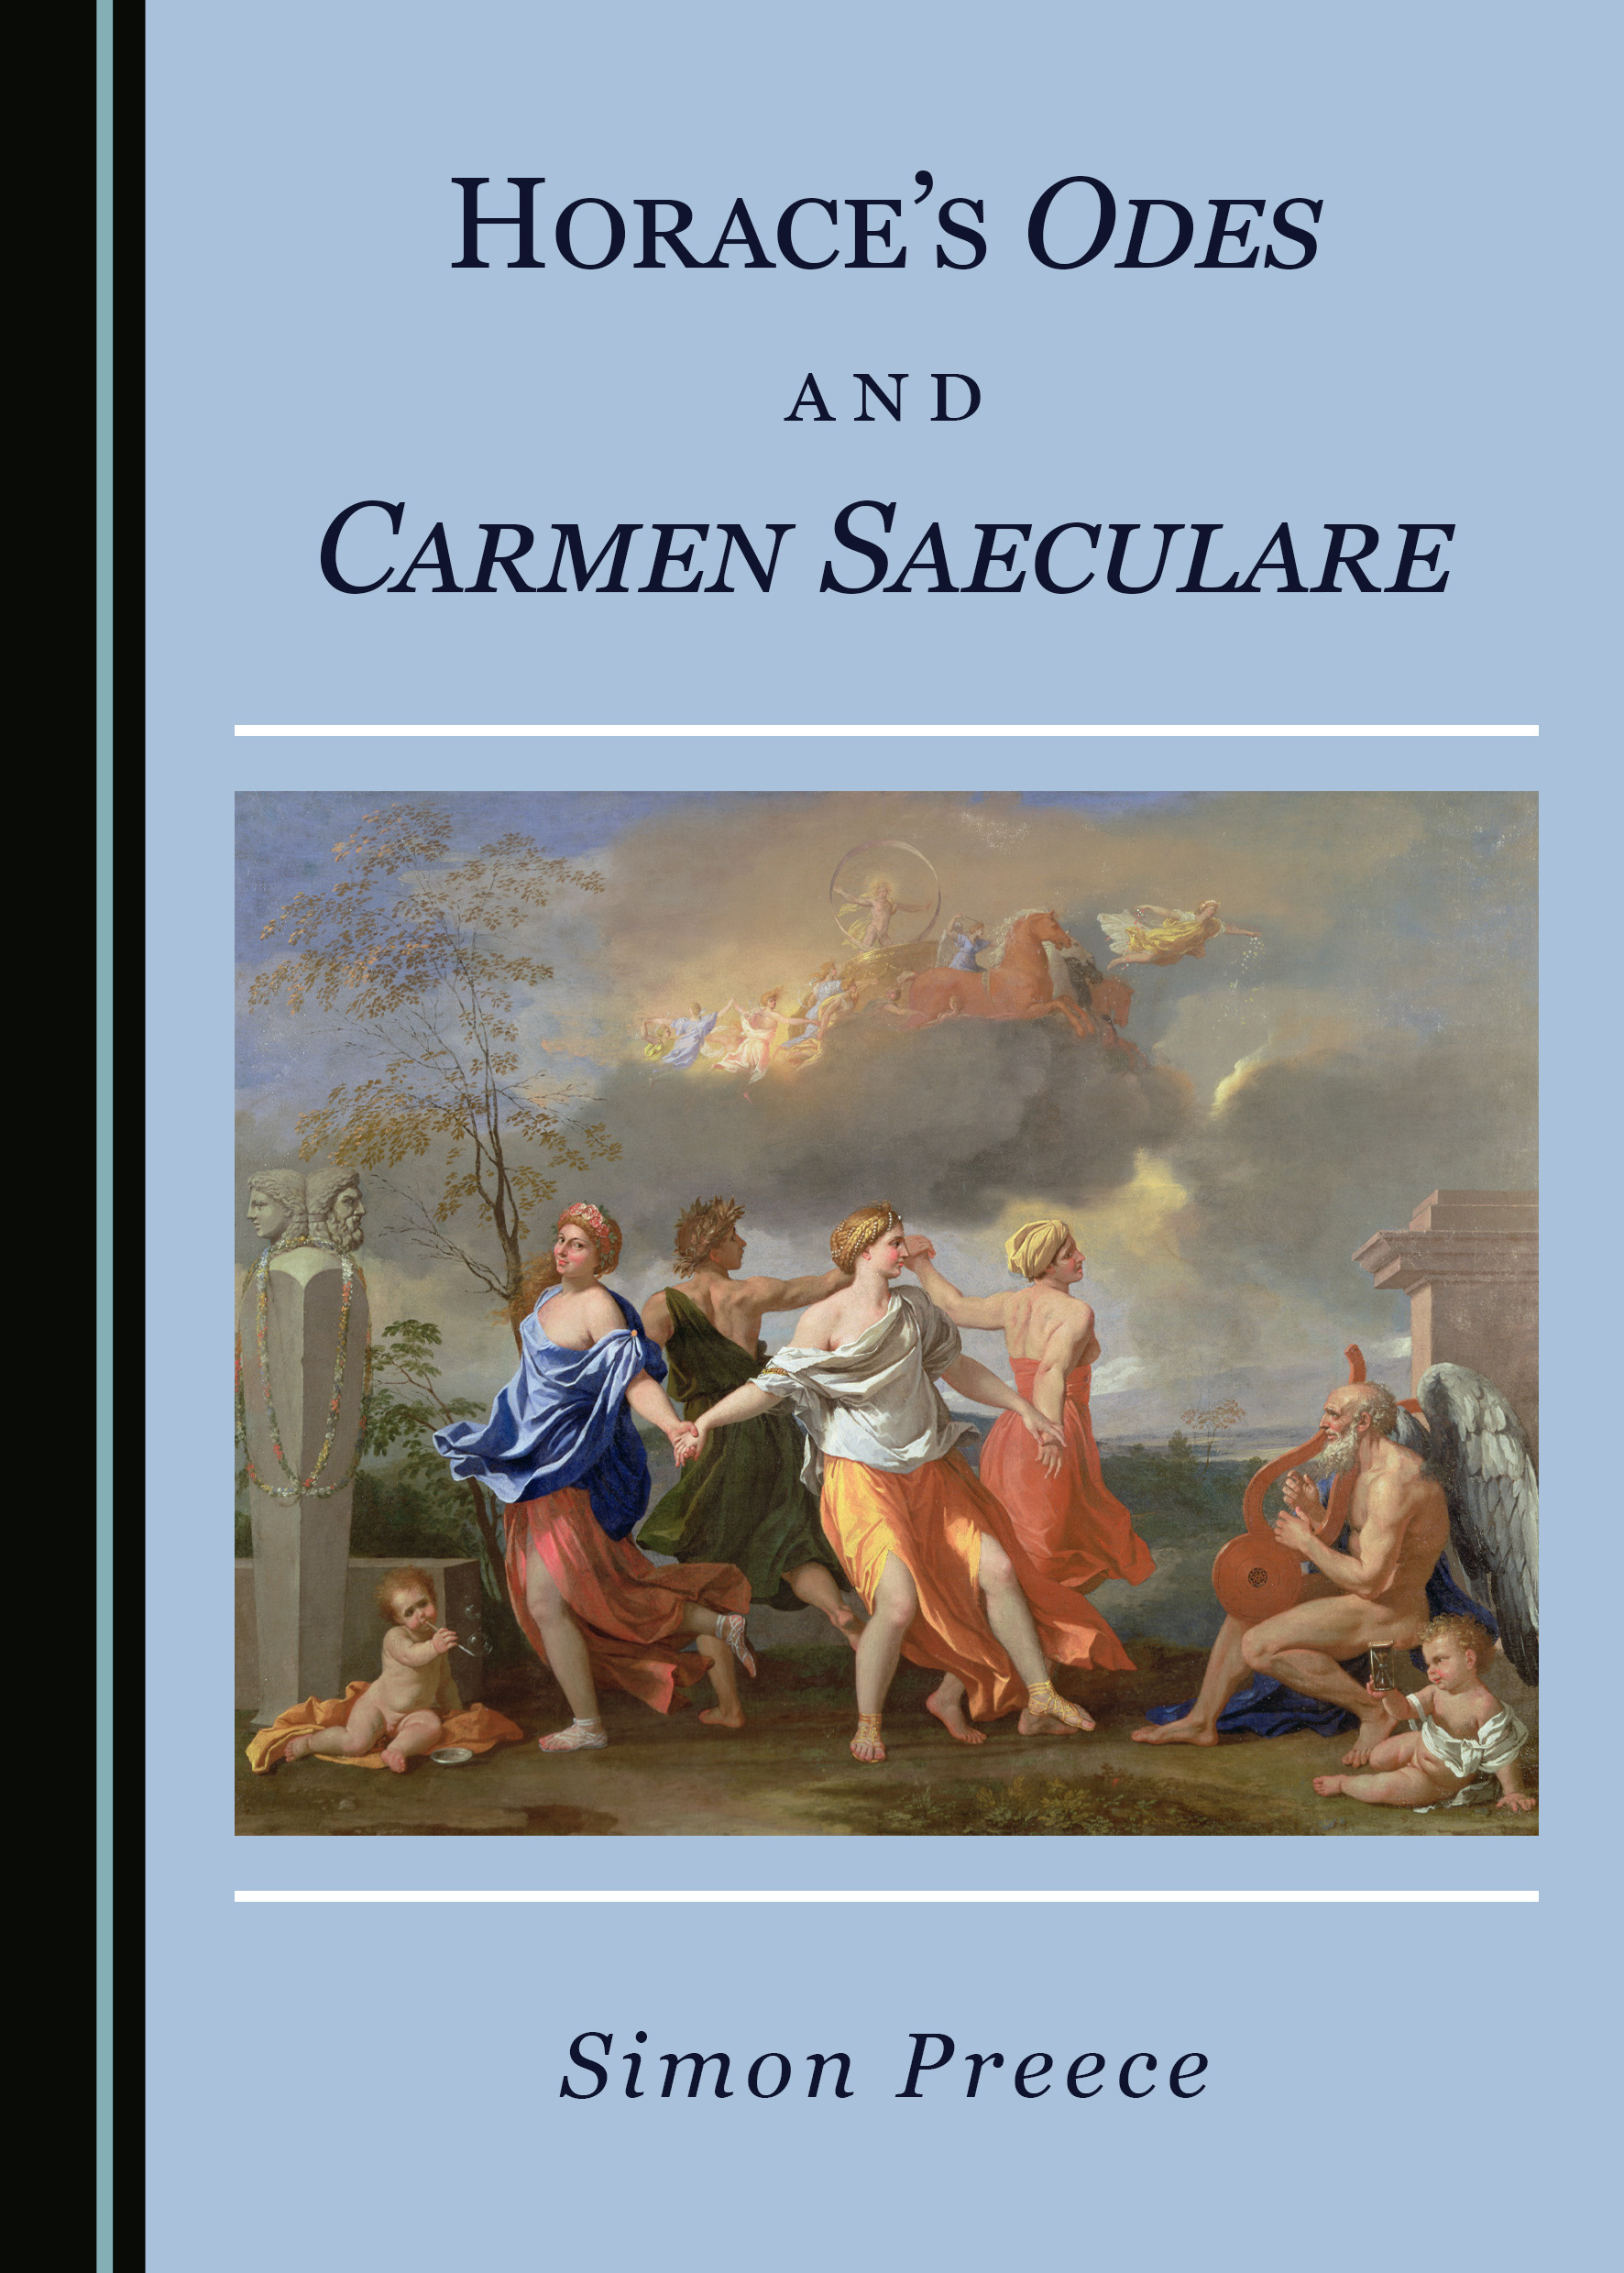 Horace's Odes and Carmen Saeculare